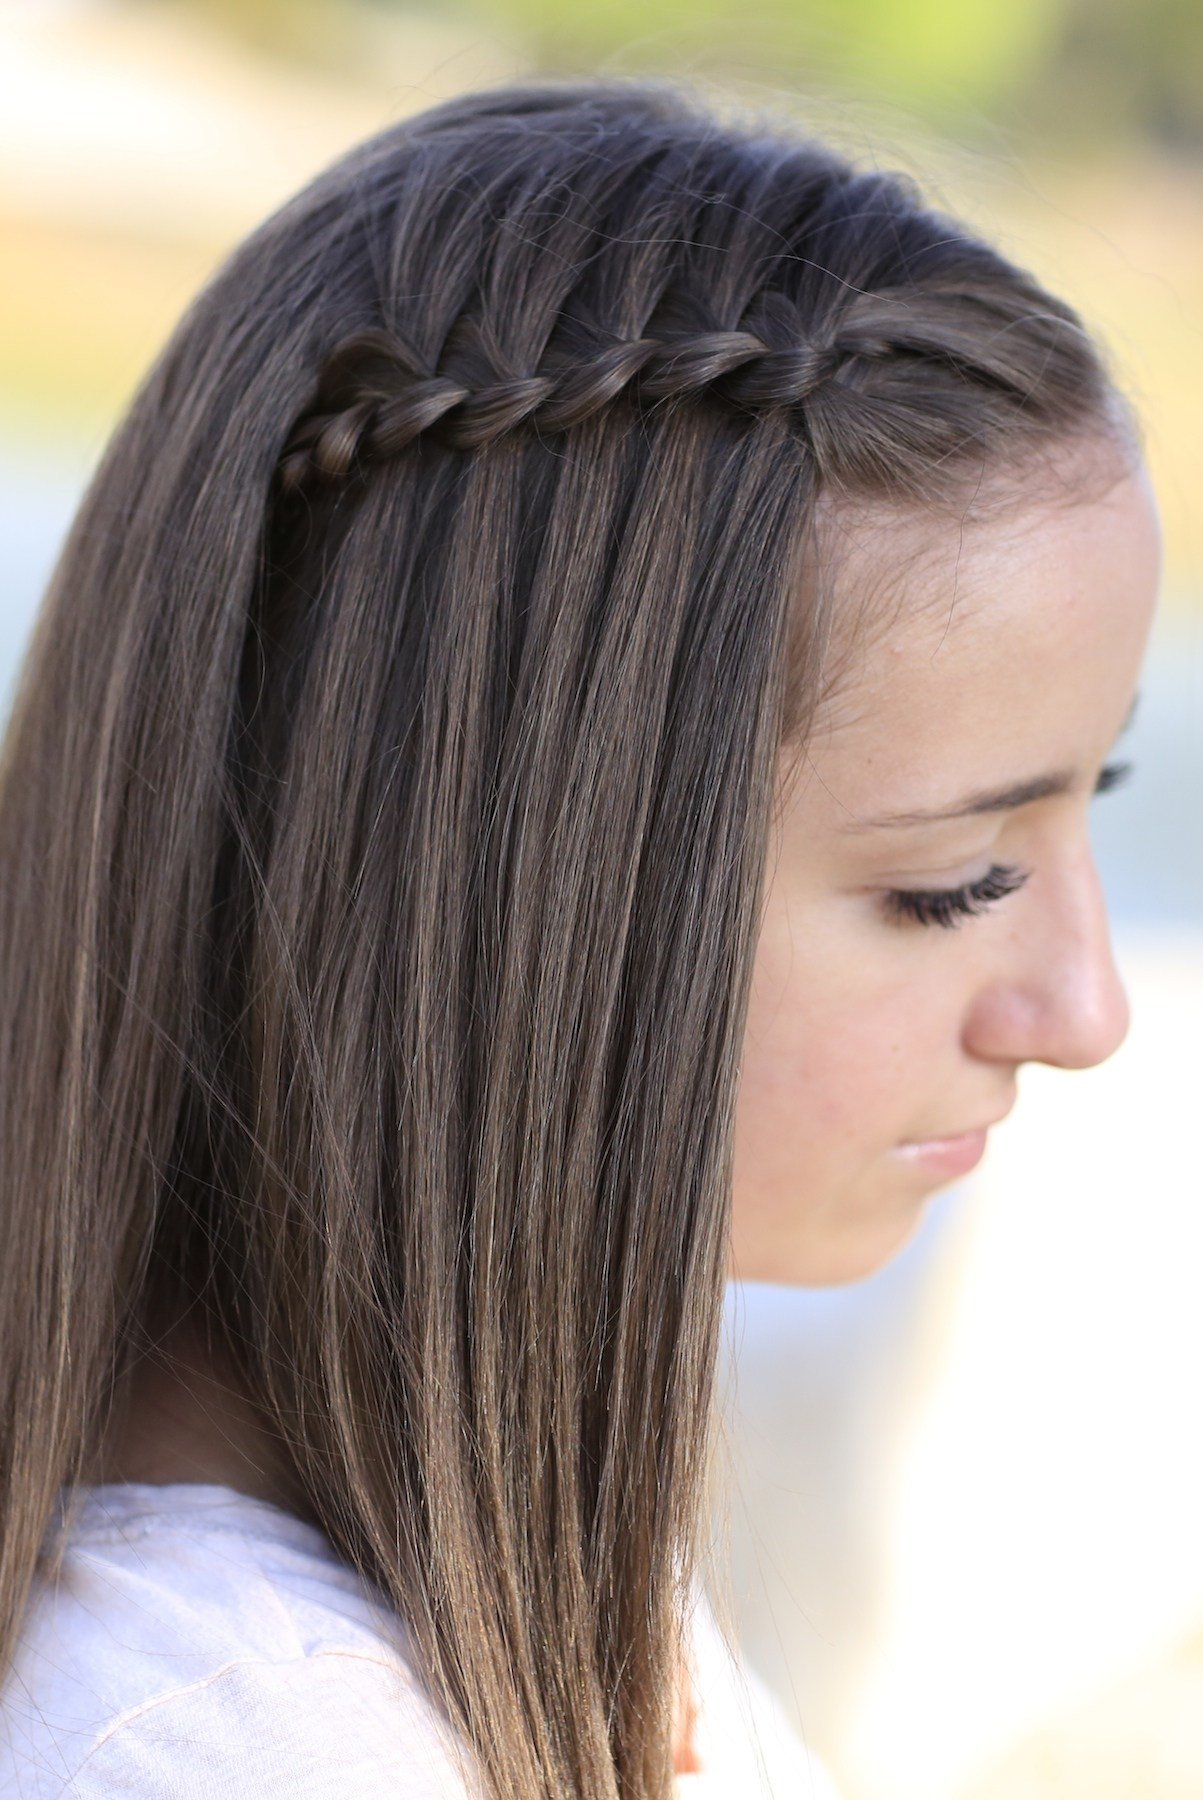 The Best 20 Cute Hairstyles For Girls And Women Magment Pictures